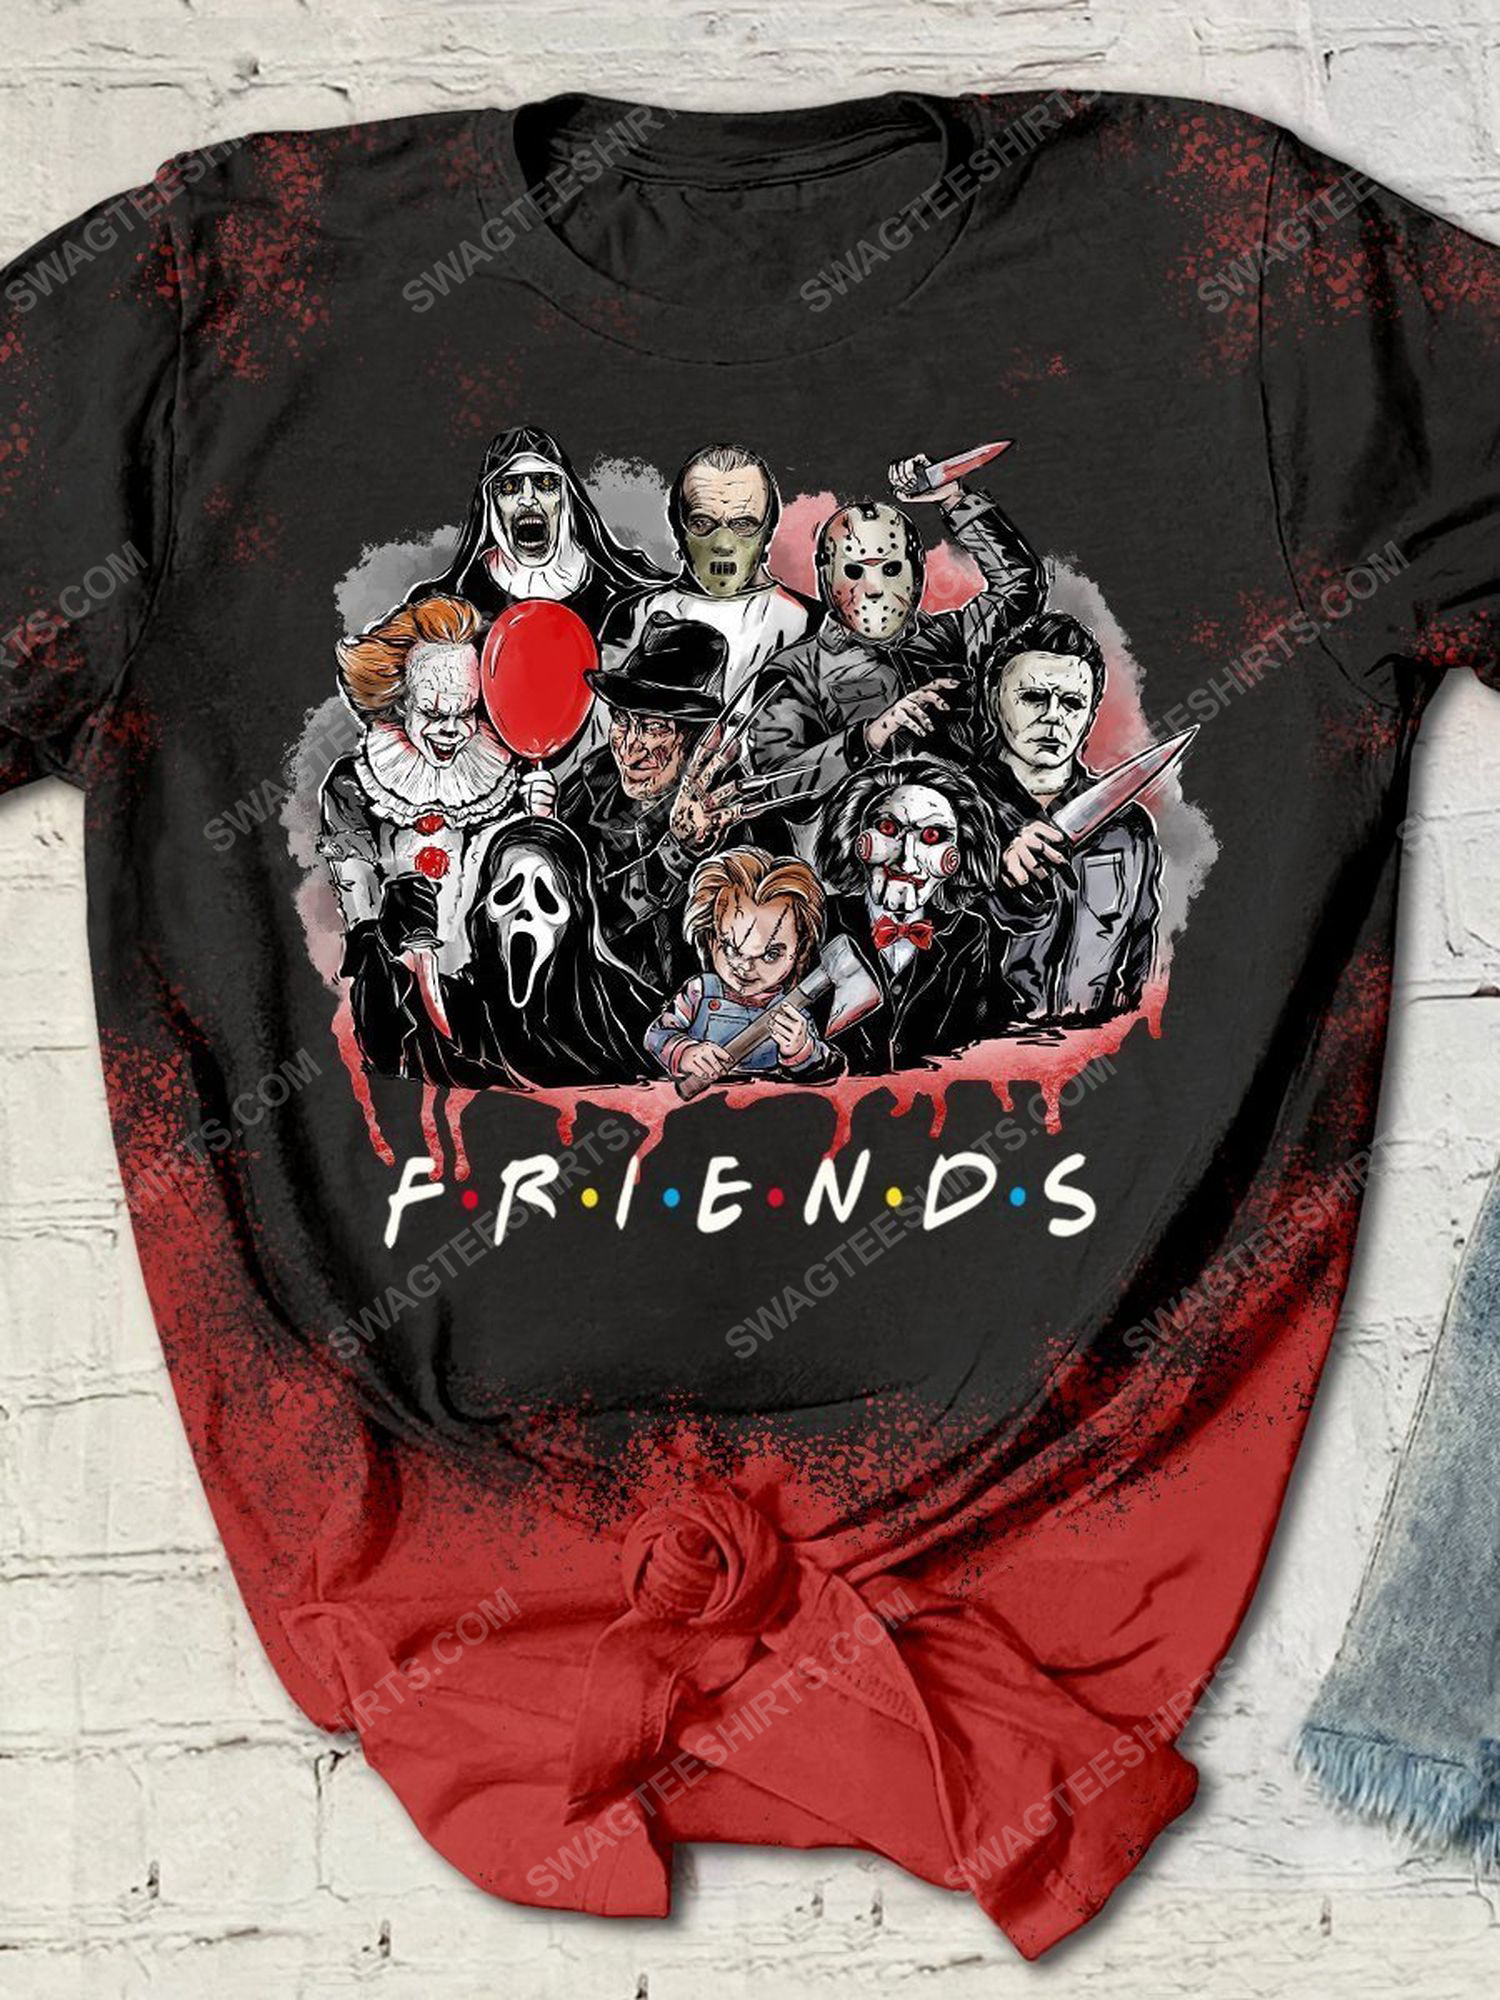 Happy halloween with serial killers friends tv show shirt 1 - Copy (2)